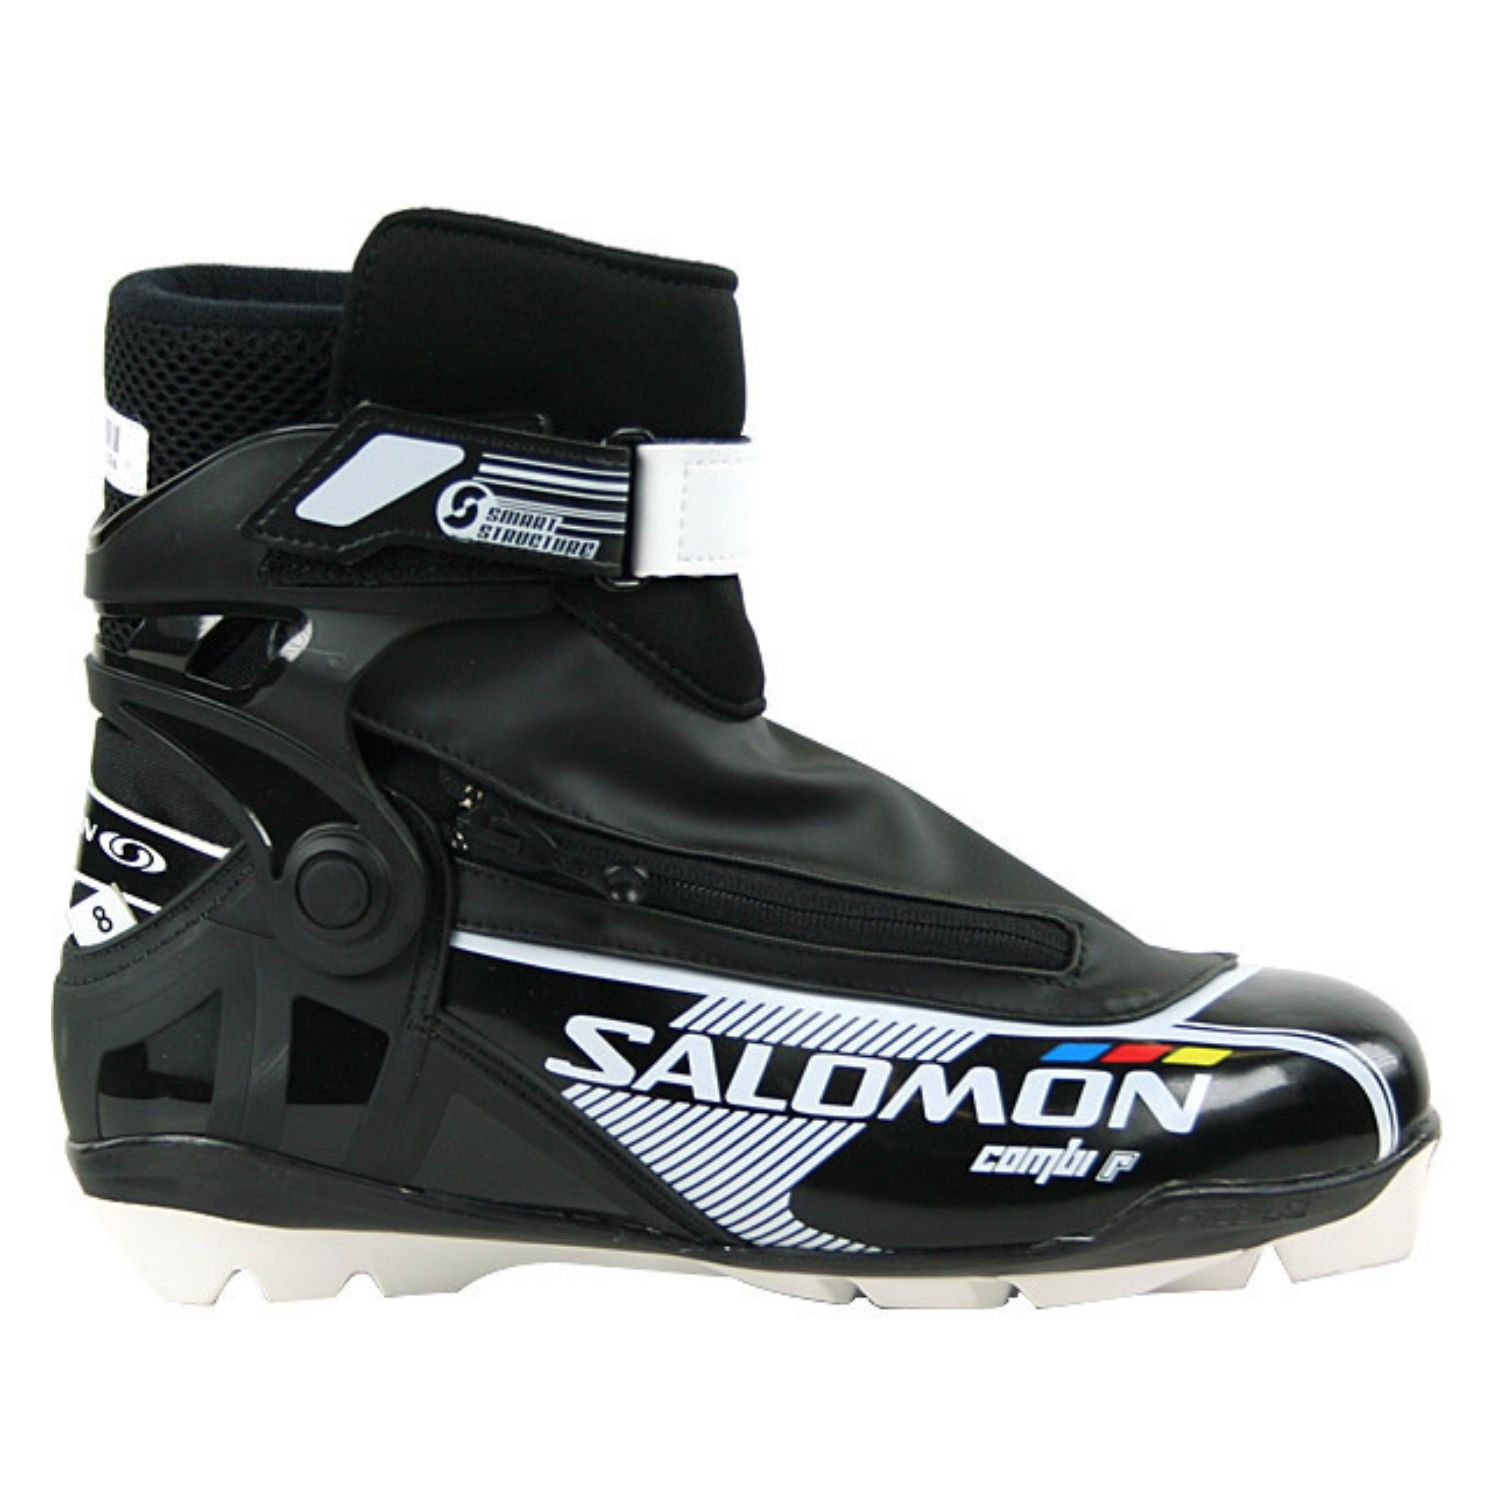 SALOMON Combi Pilot Black Čierna uk 11